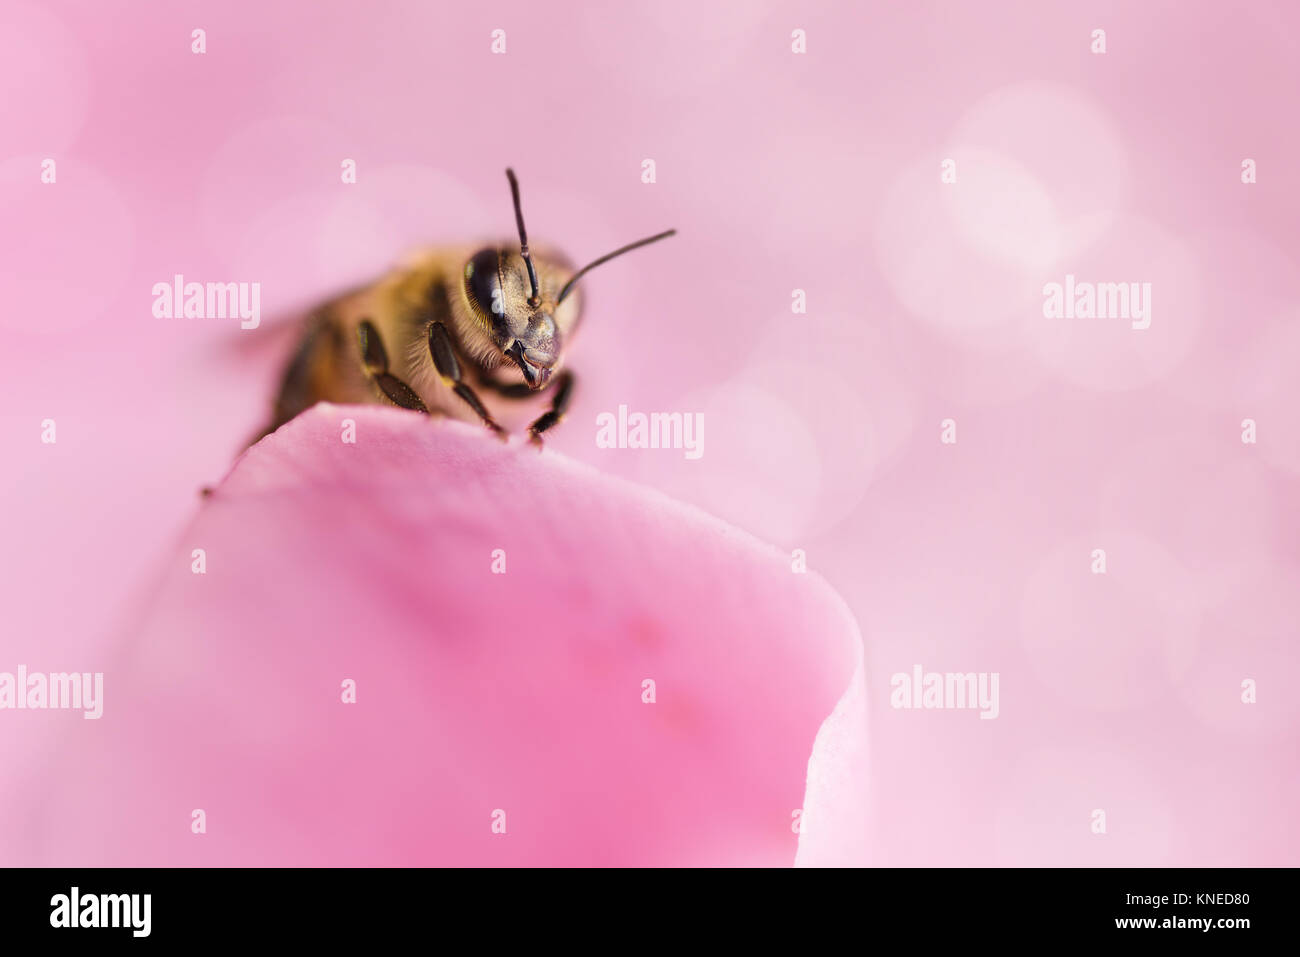 Honey bee collecting pollen from flowers.Macro photography.Nature concept. - Stock Image